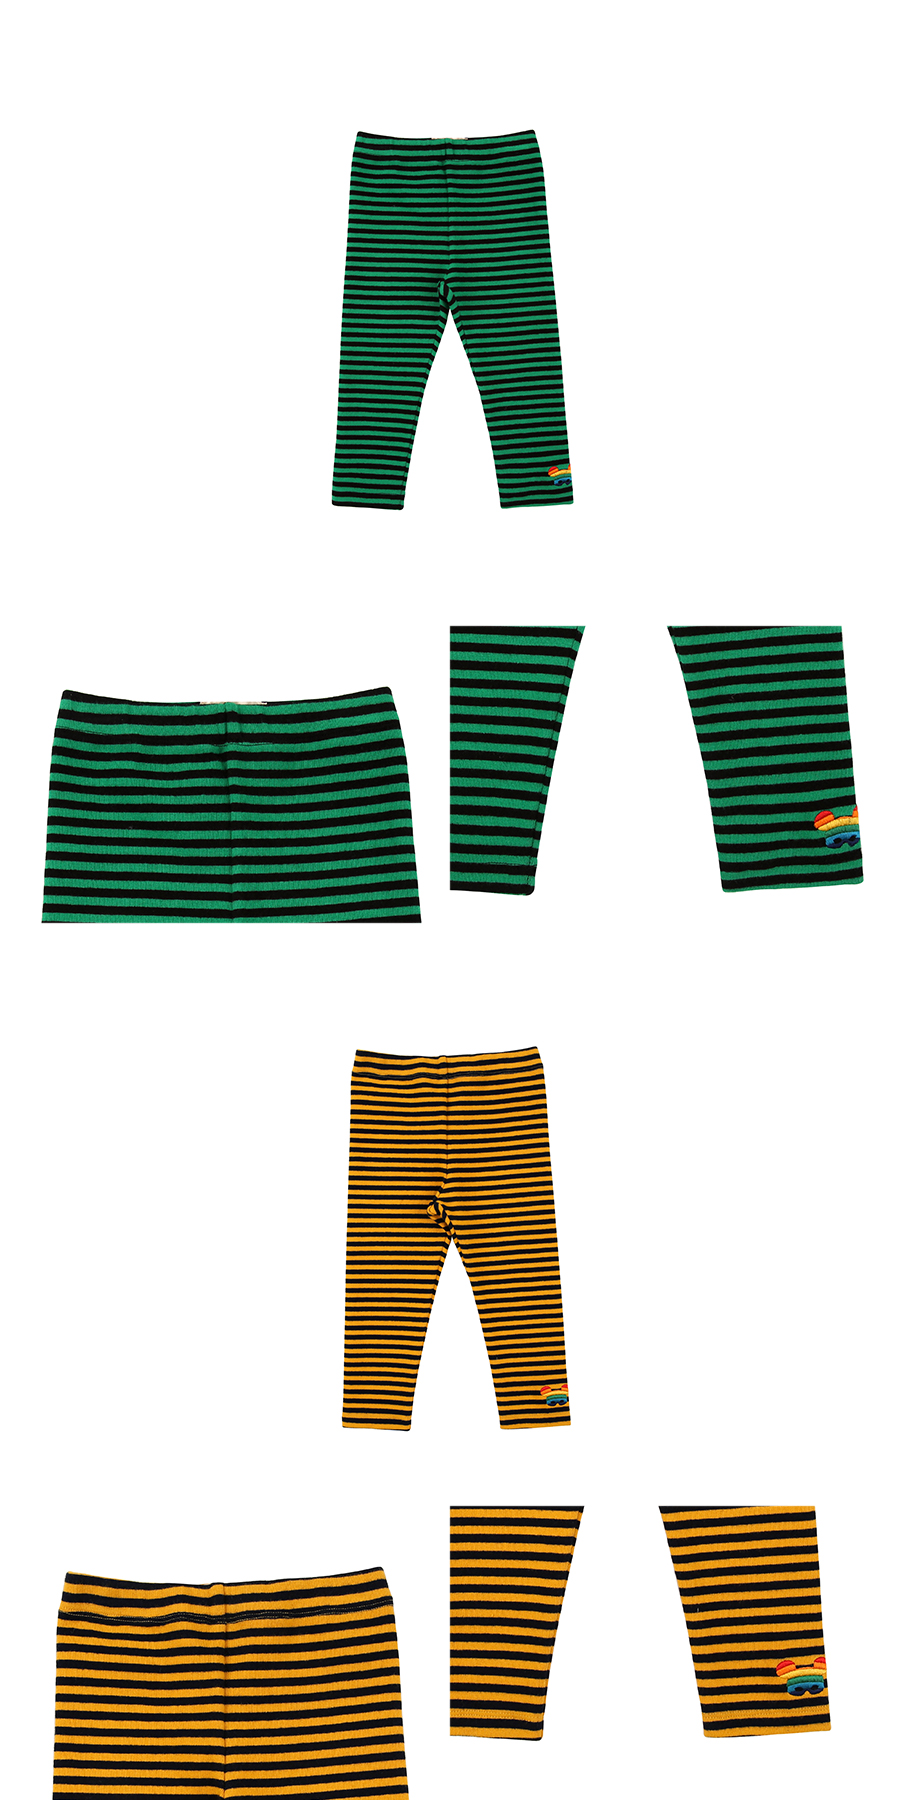 Basic baby stripe leggings 상세 이미지